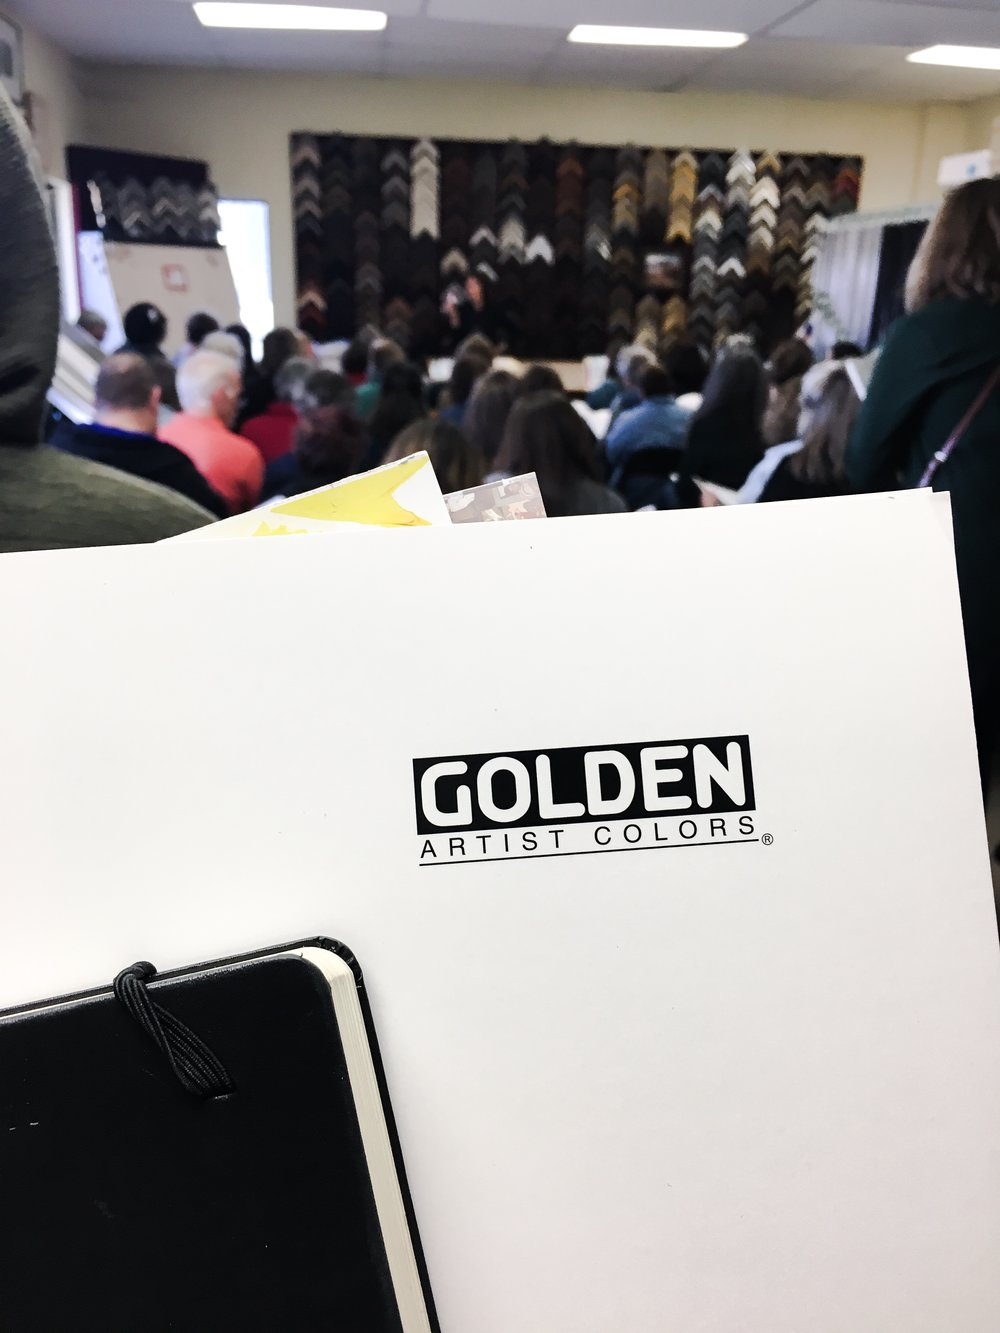 More than seventy acrylic artists came to learn about the inner workings of acrylic pastes, gels, and mediums at the Golden Artist Colors painting demo